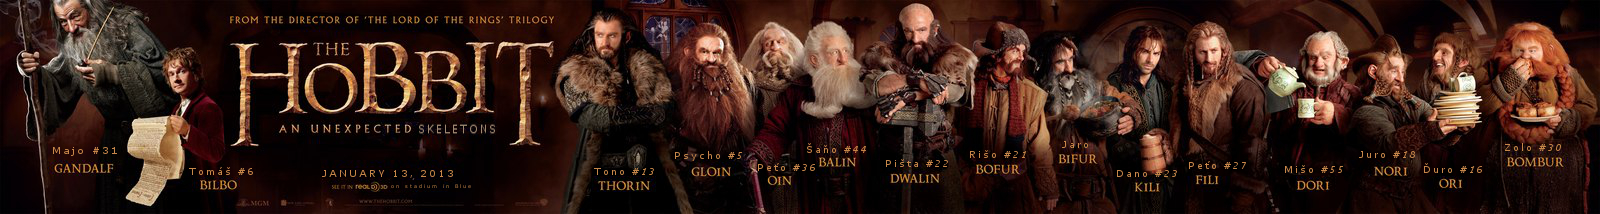 The Hobbit: An Unexpected Skeletons Dwarves